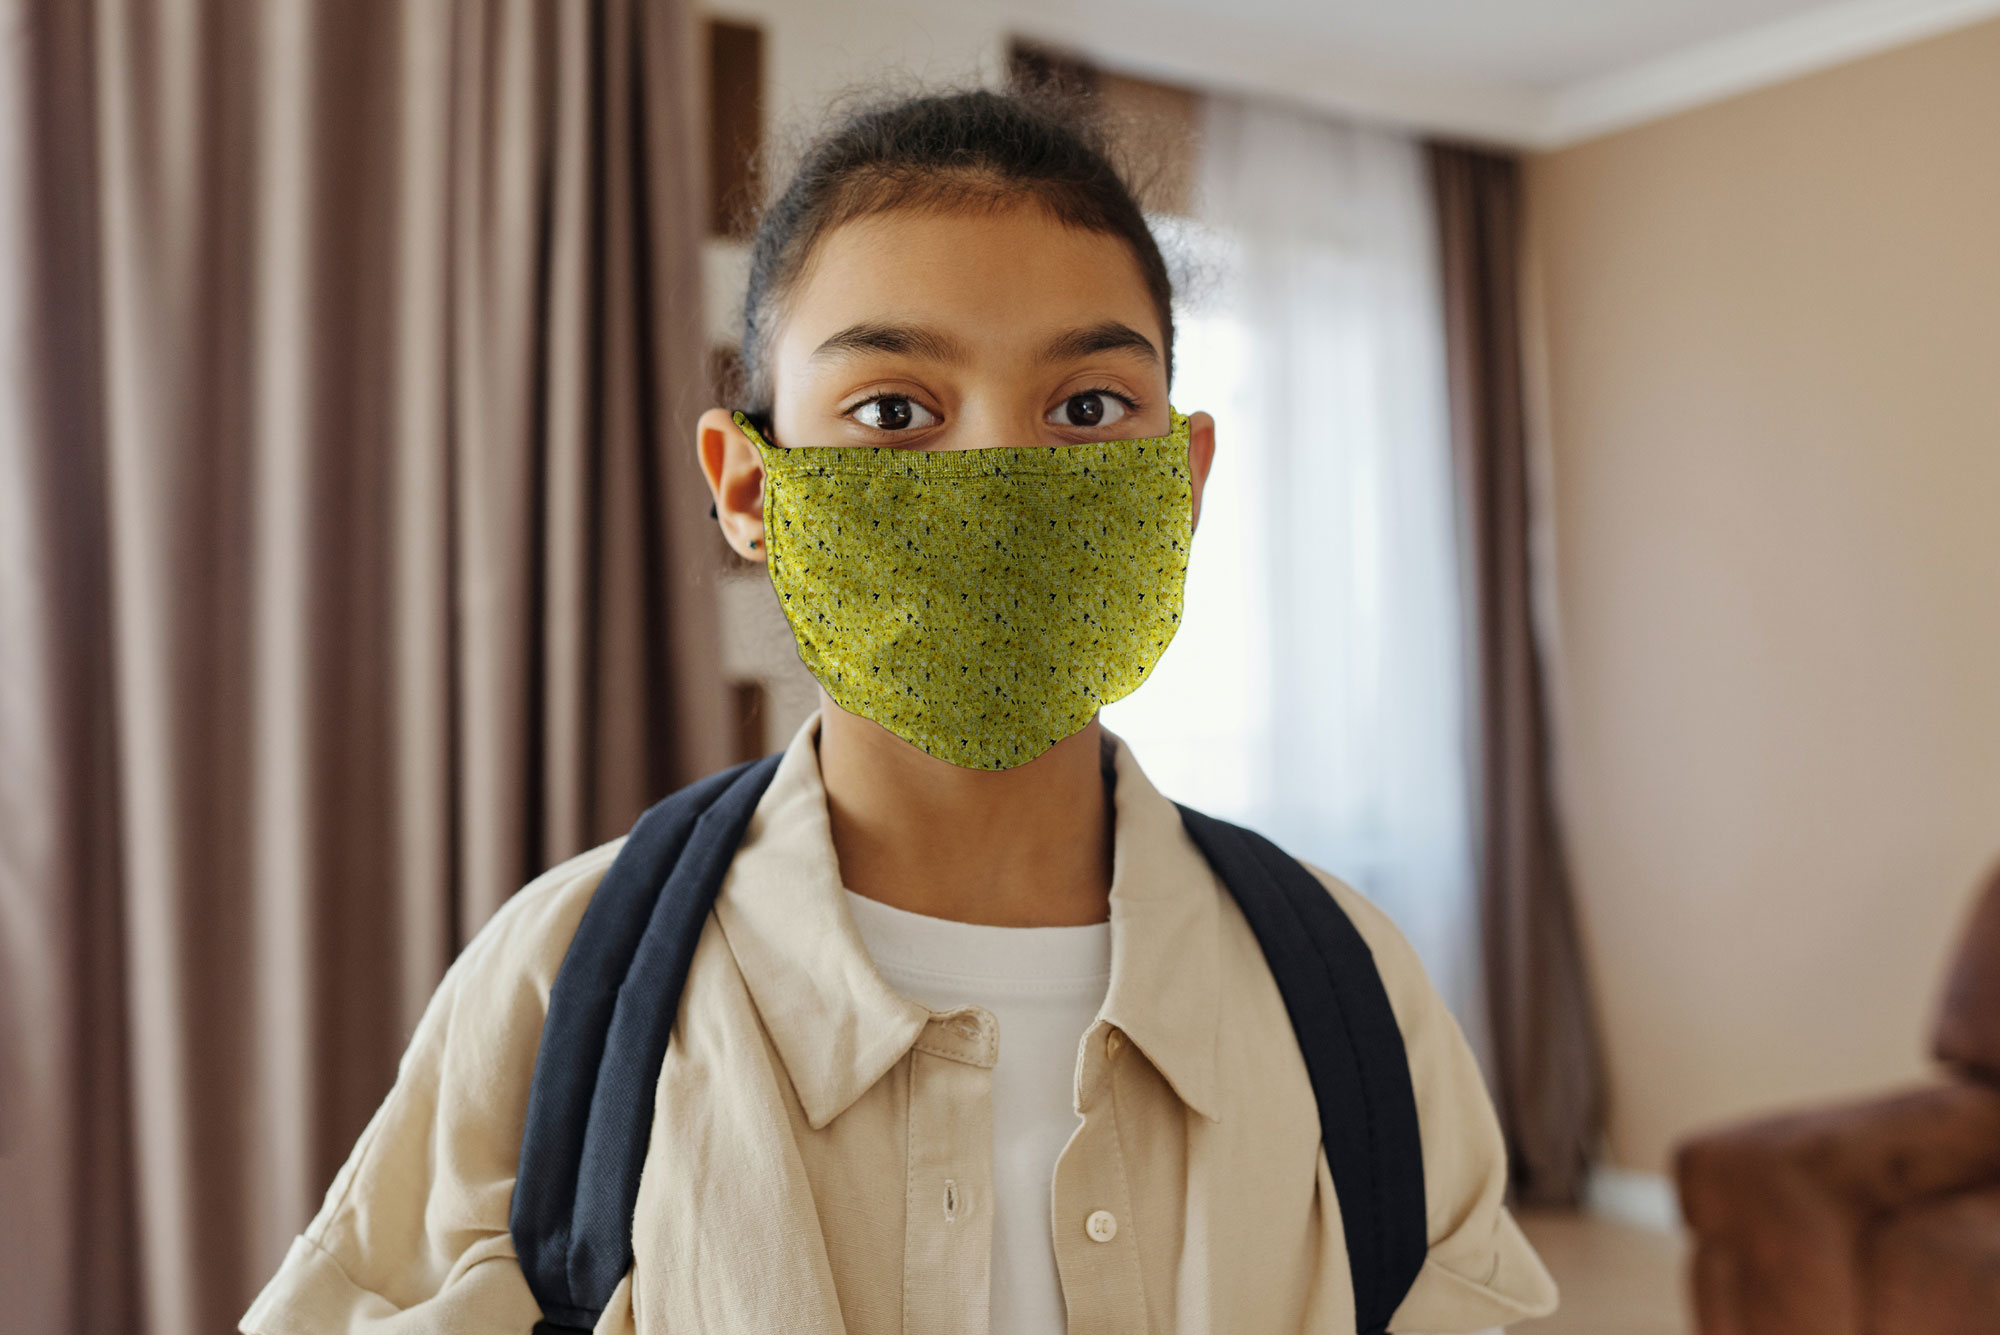 Little Girl Wearing a Face Mask Mockup